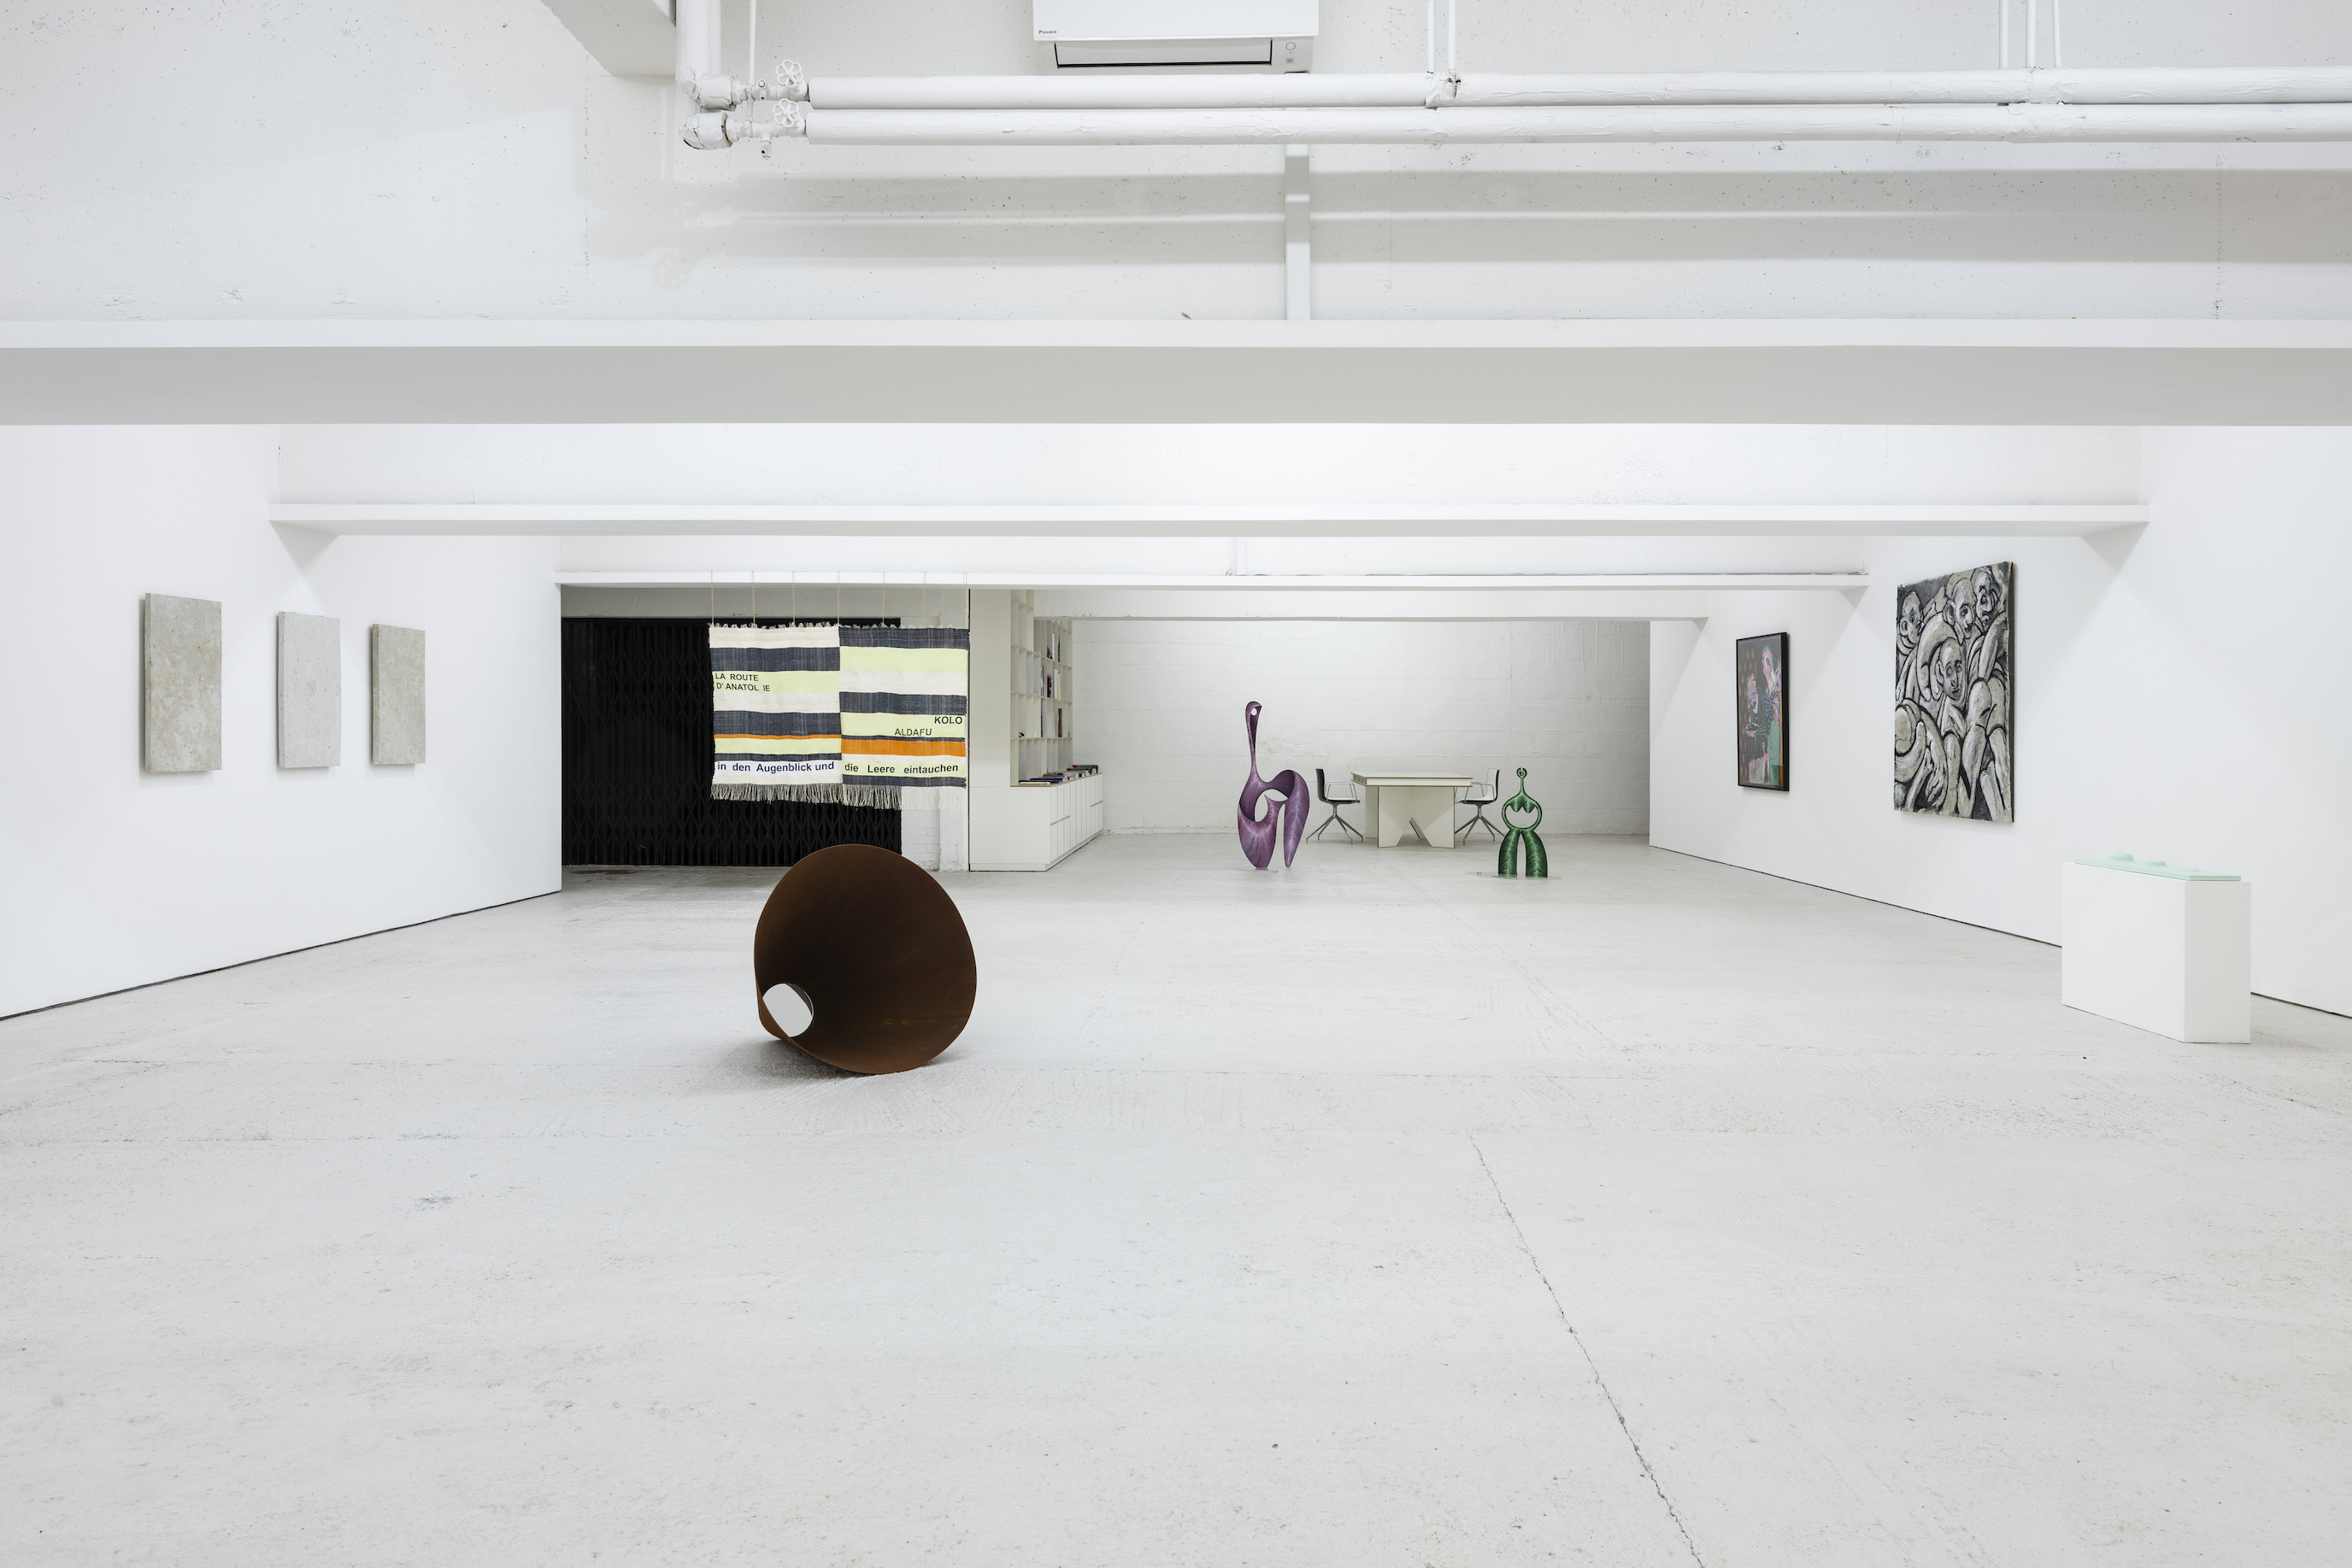 Installation view 7, Open Call, König London, 2020. photo by Damian Griffiths